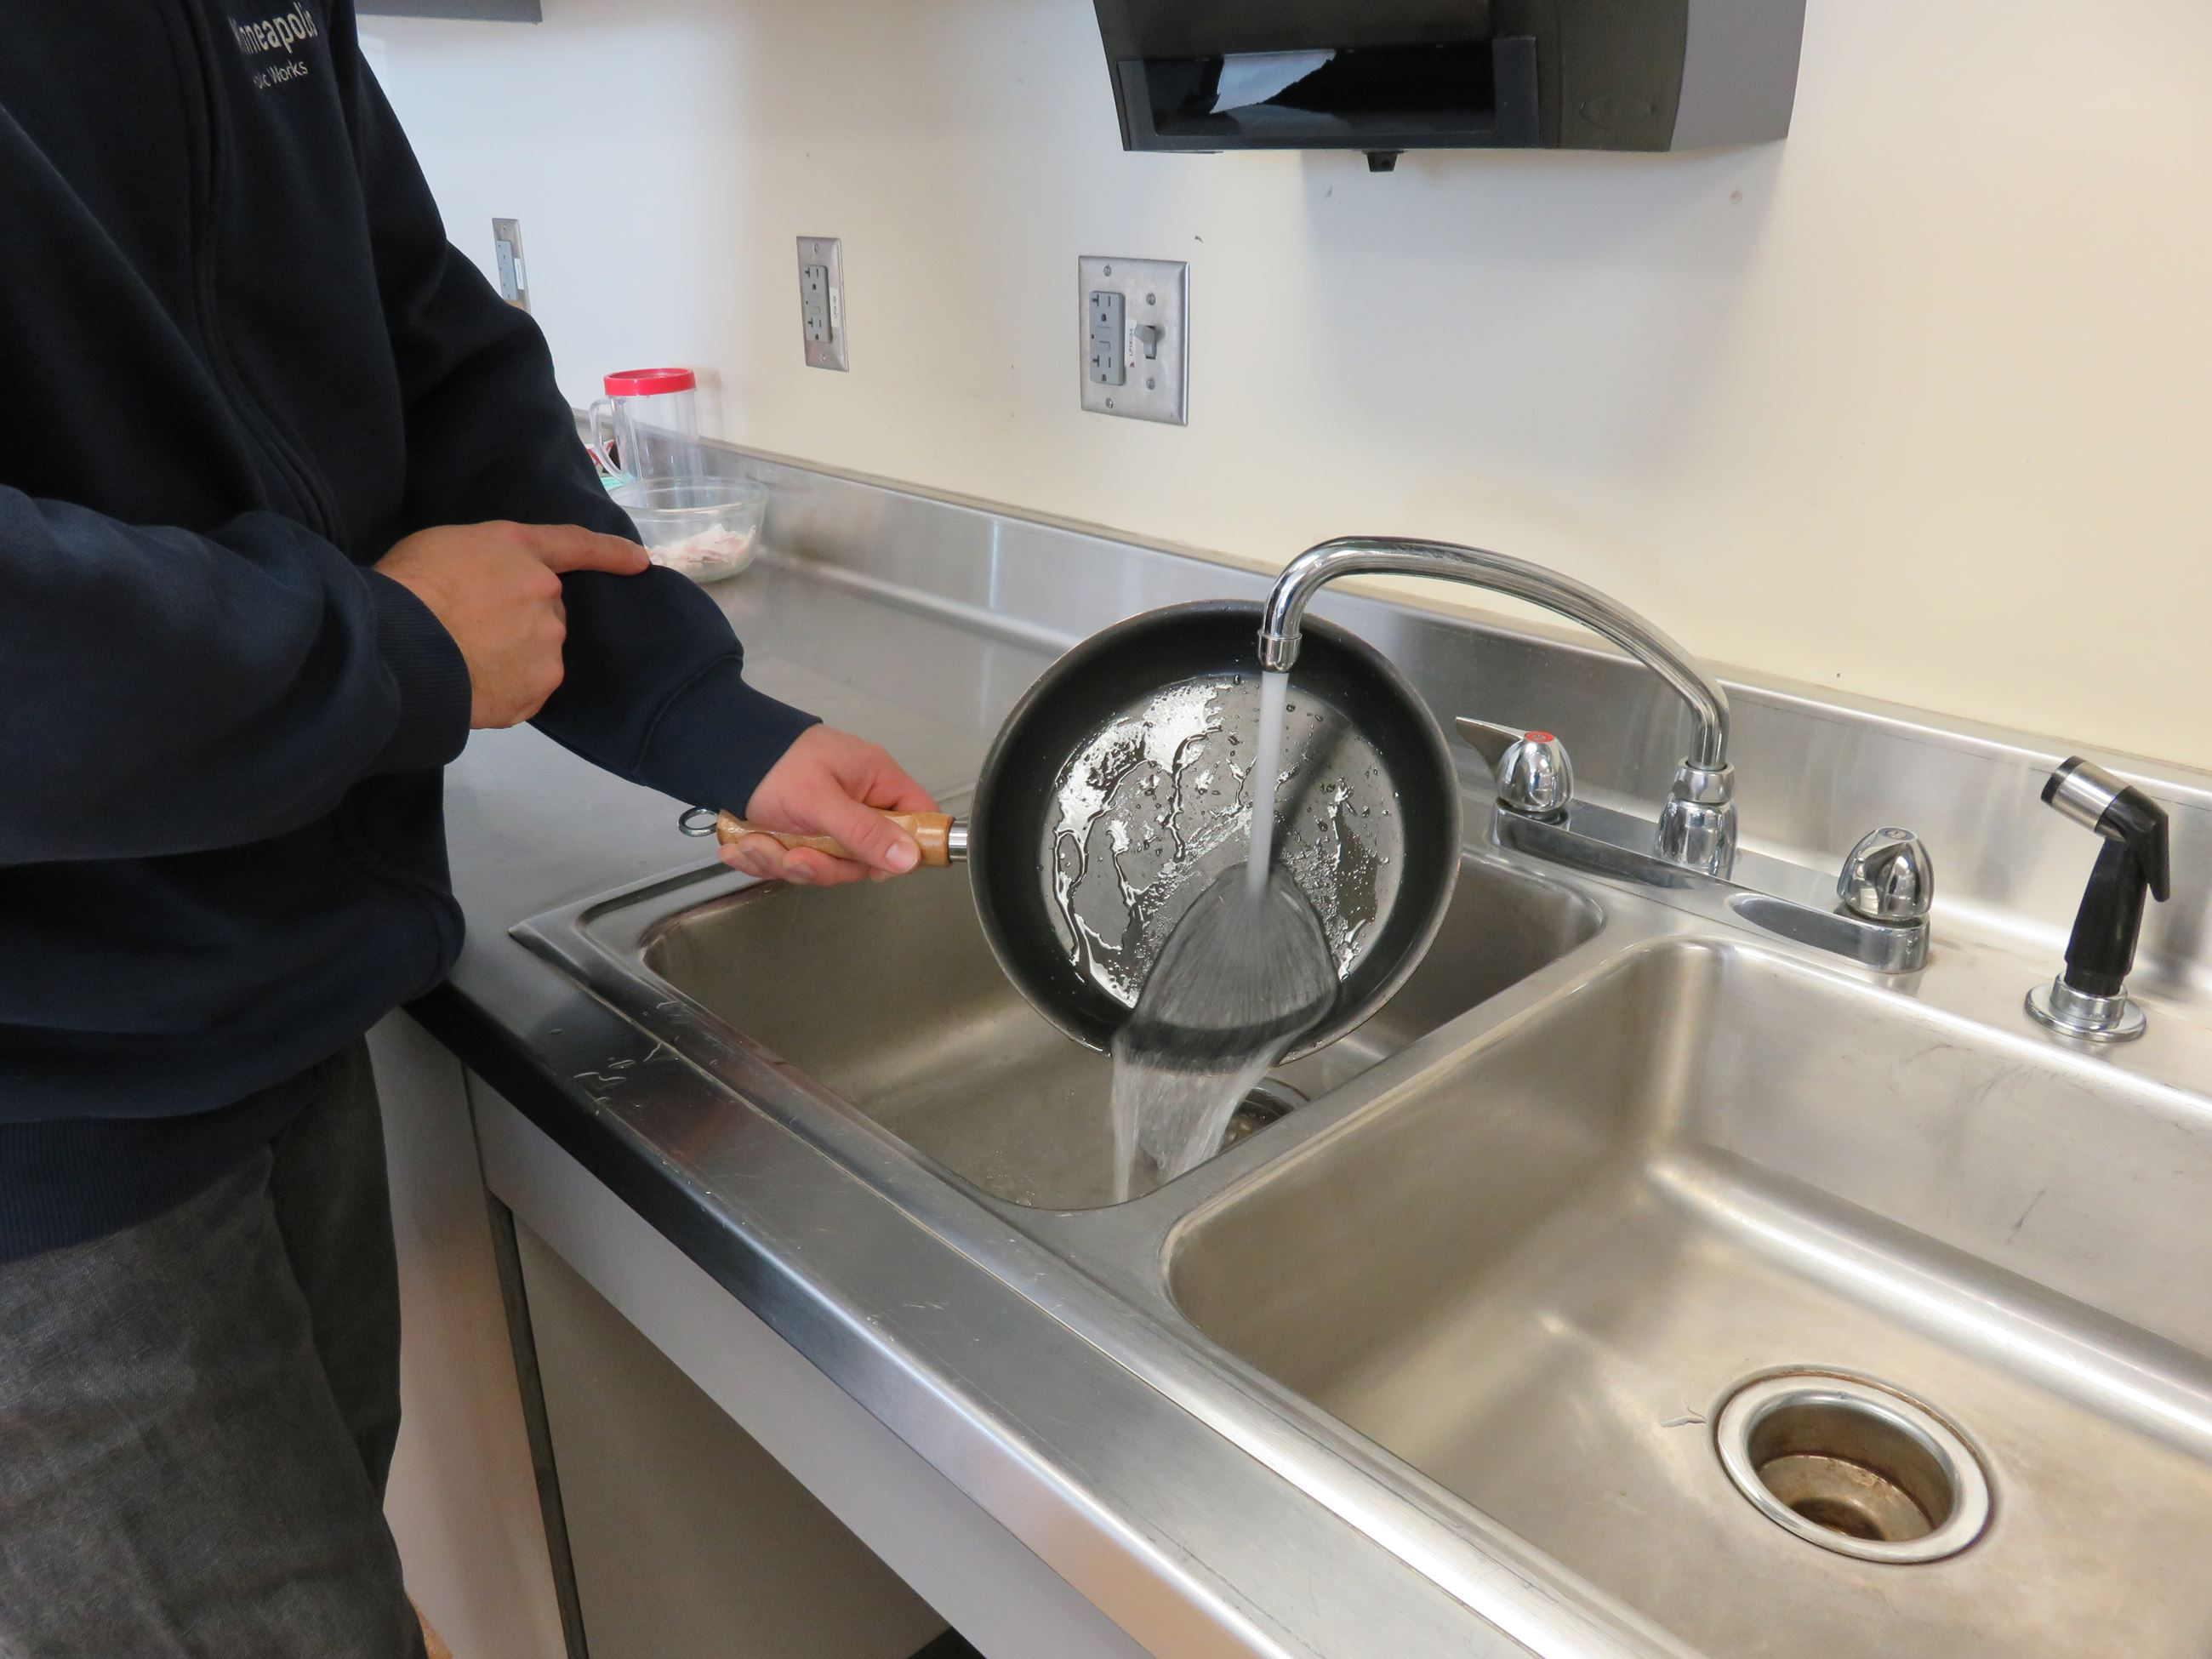 Person rinsing small fry pan with water.